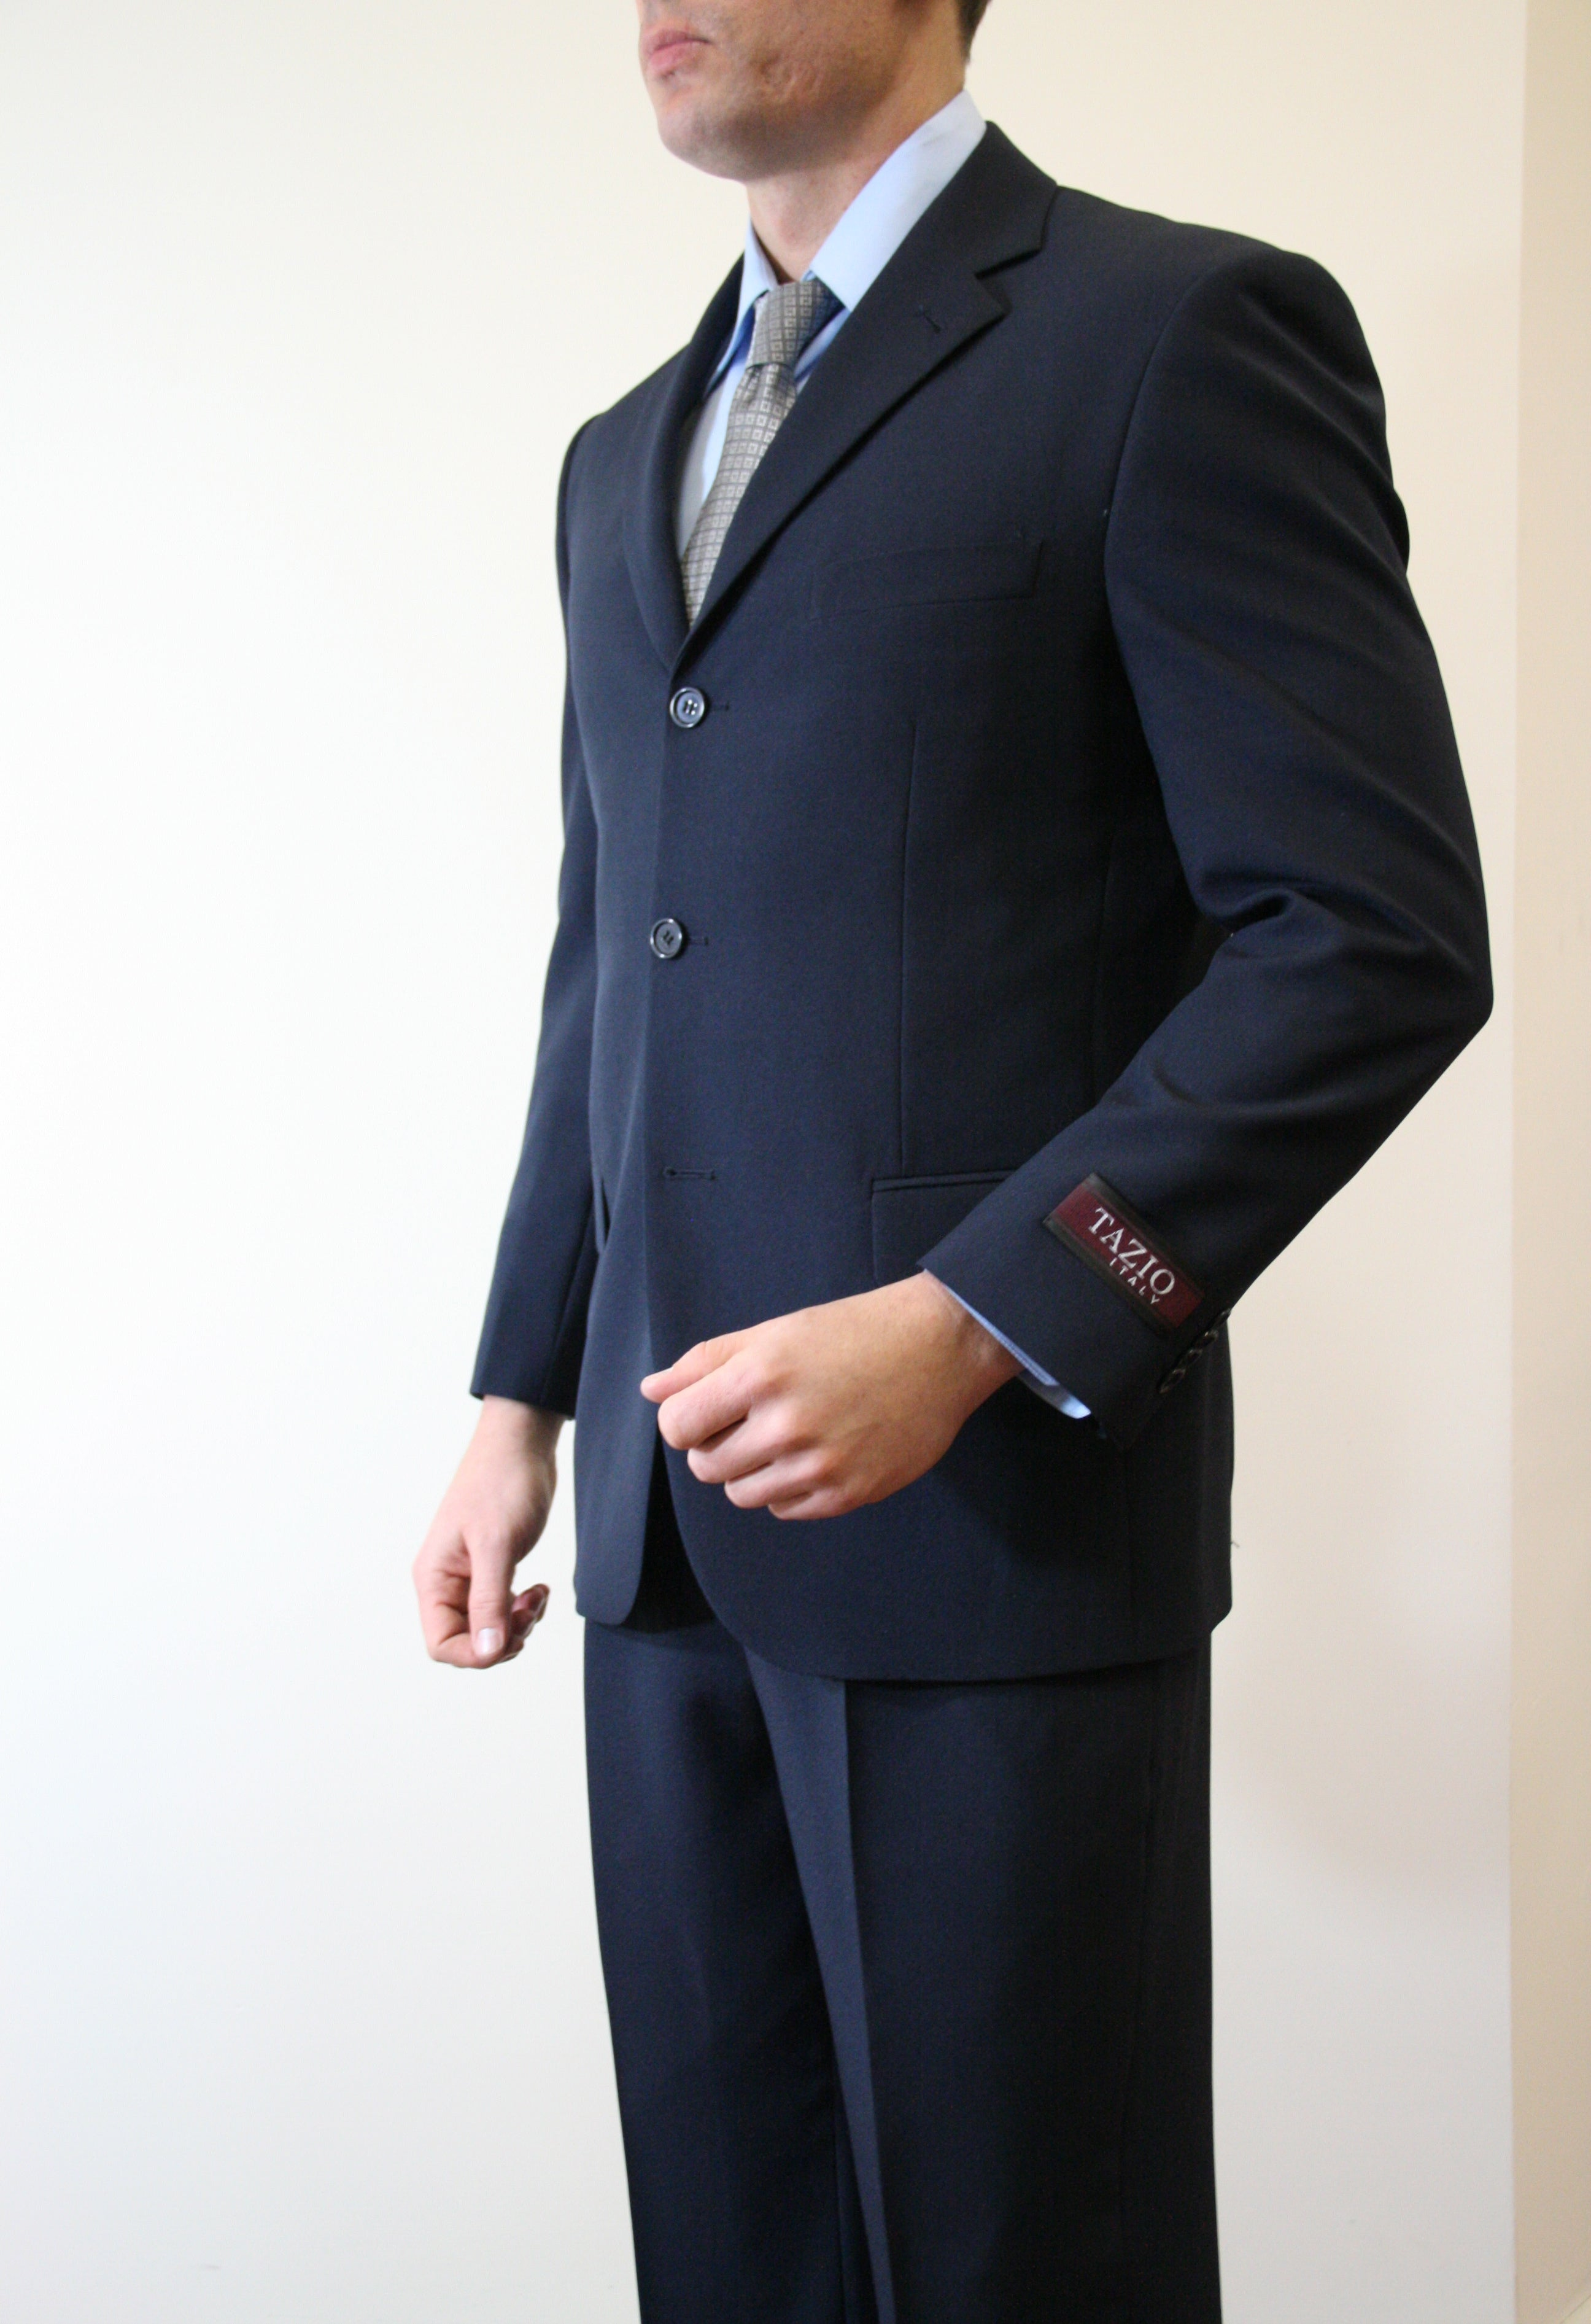 Dk Navy Suit For Men Formal Suits For All Ocassions M069-11